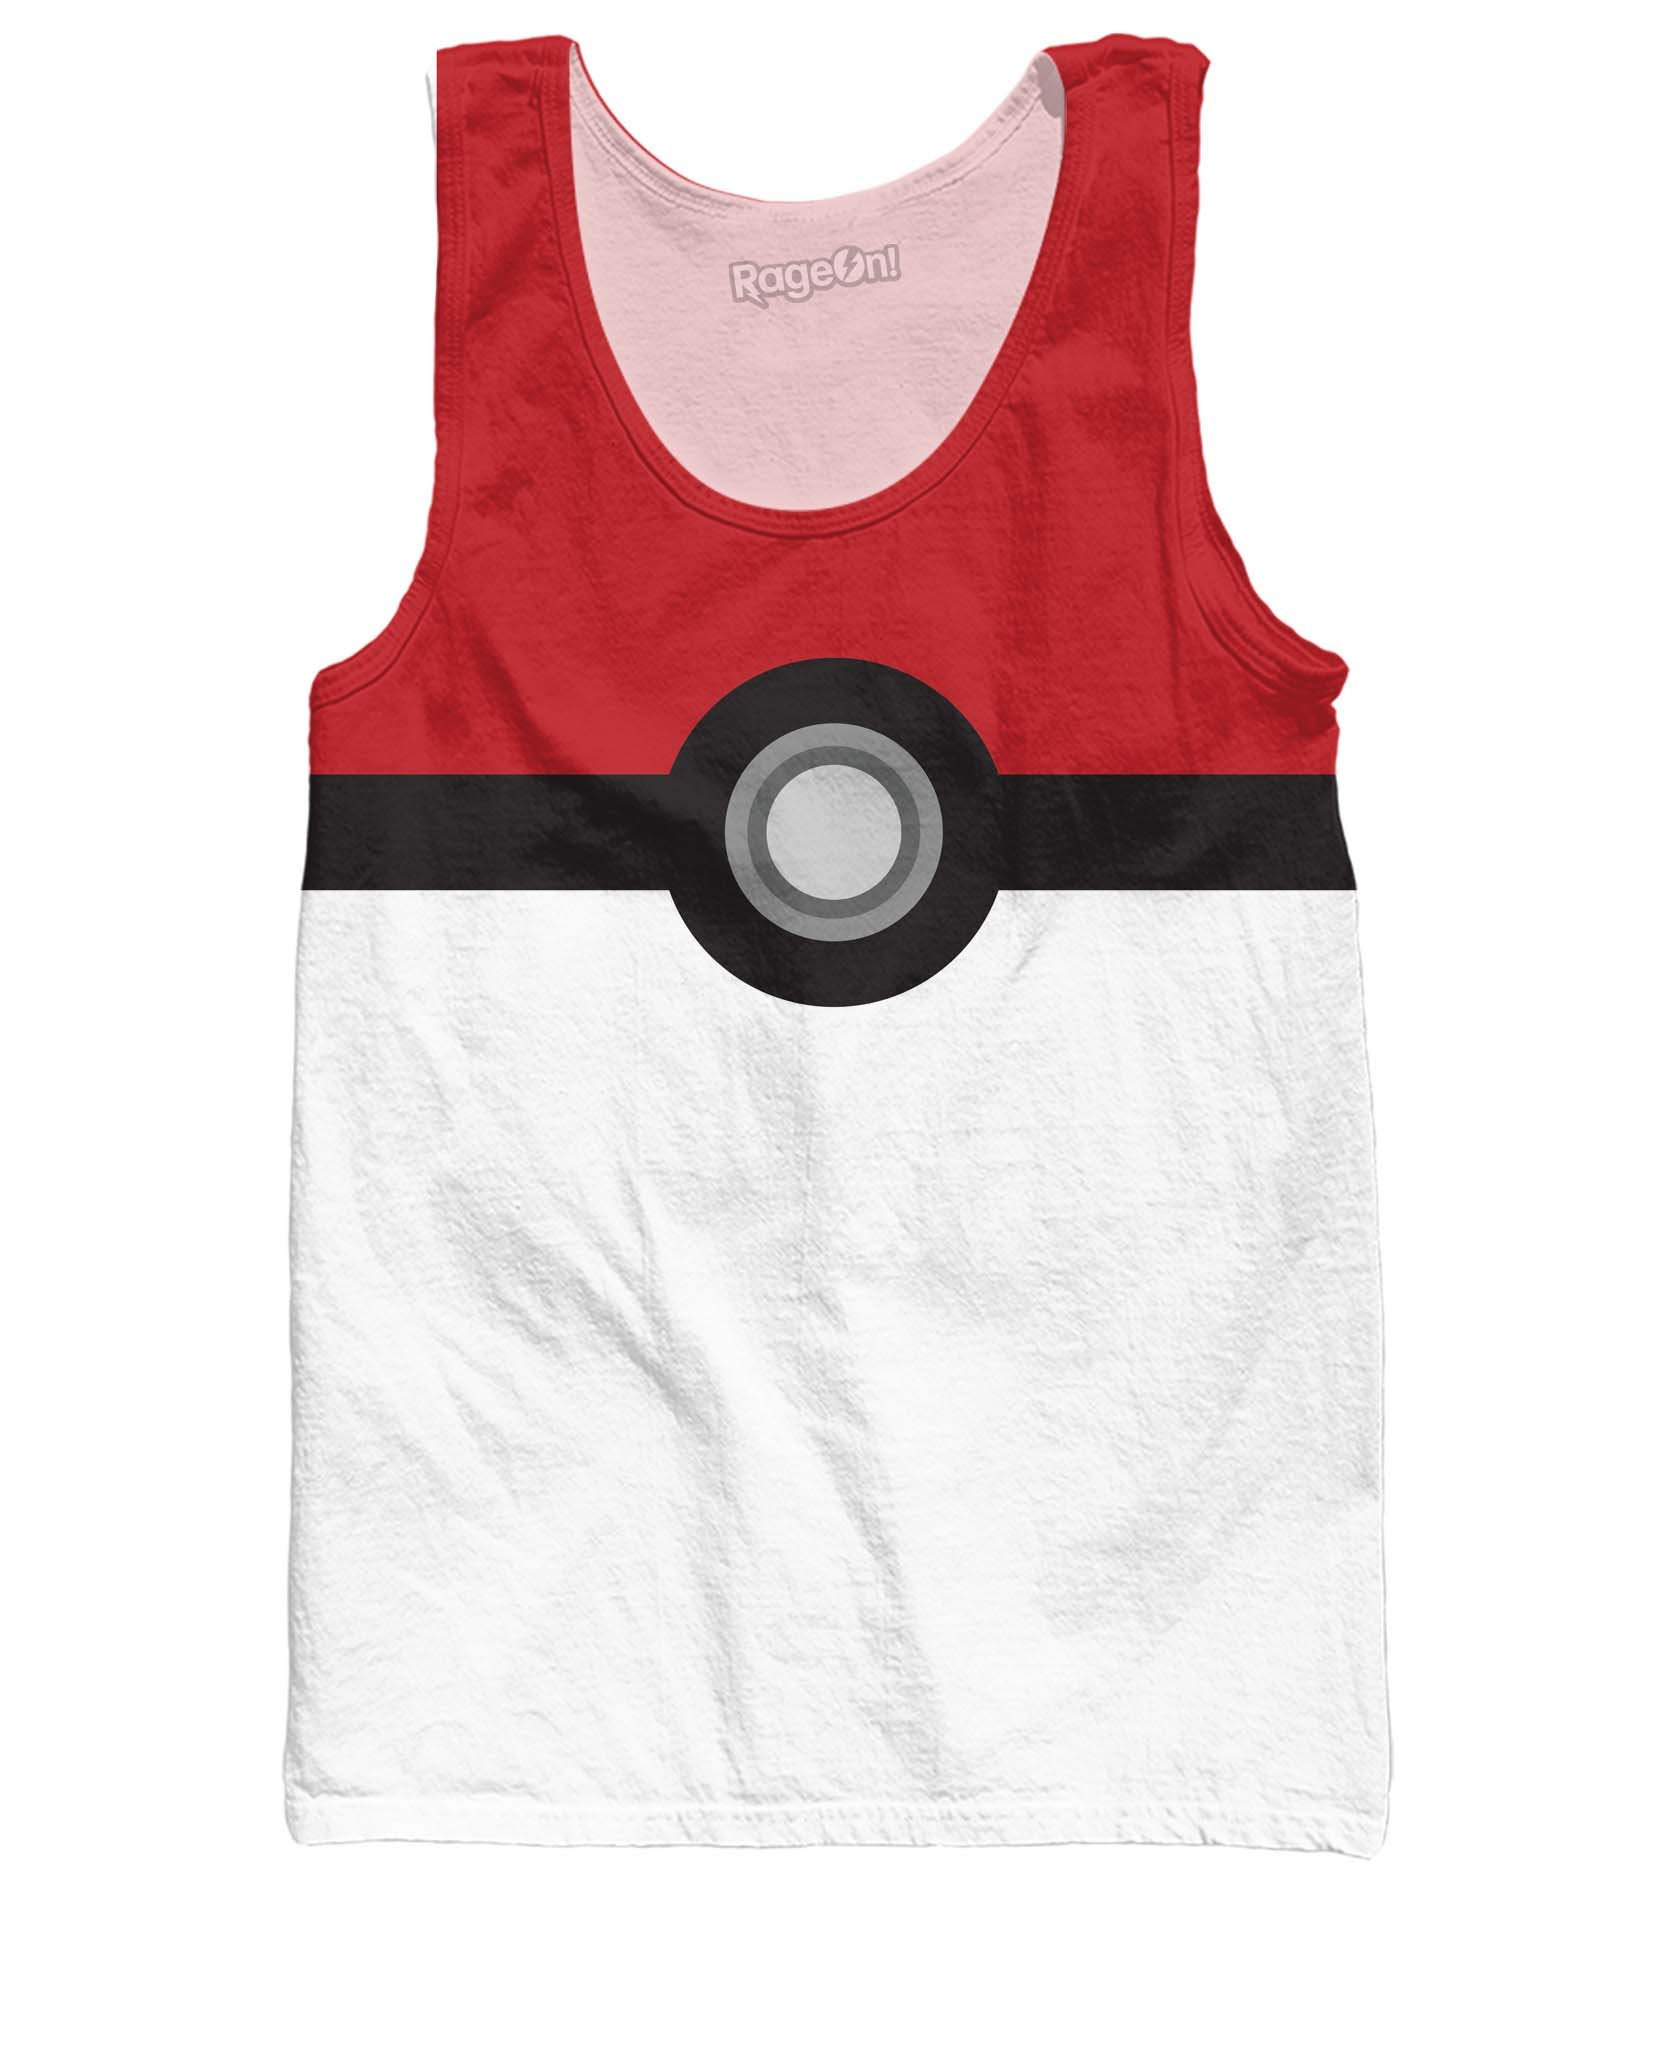 RageOn Men's Pokemon Pokeball Catch Em All Tank Top EDM Party